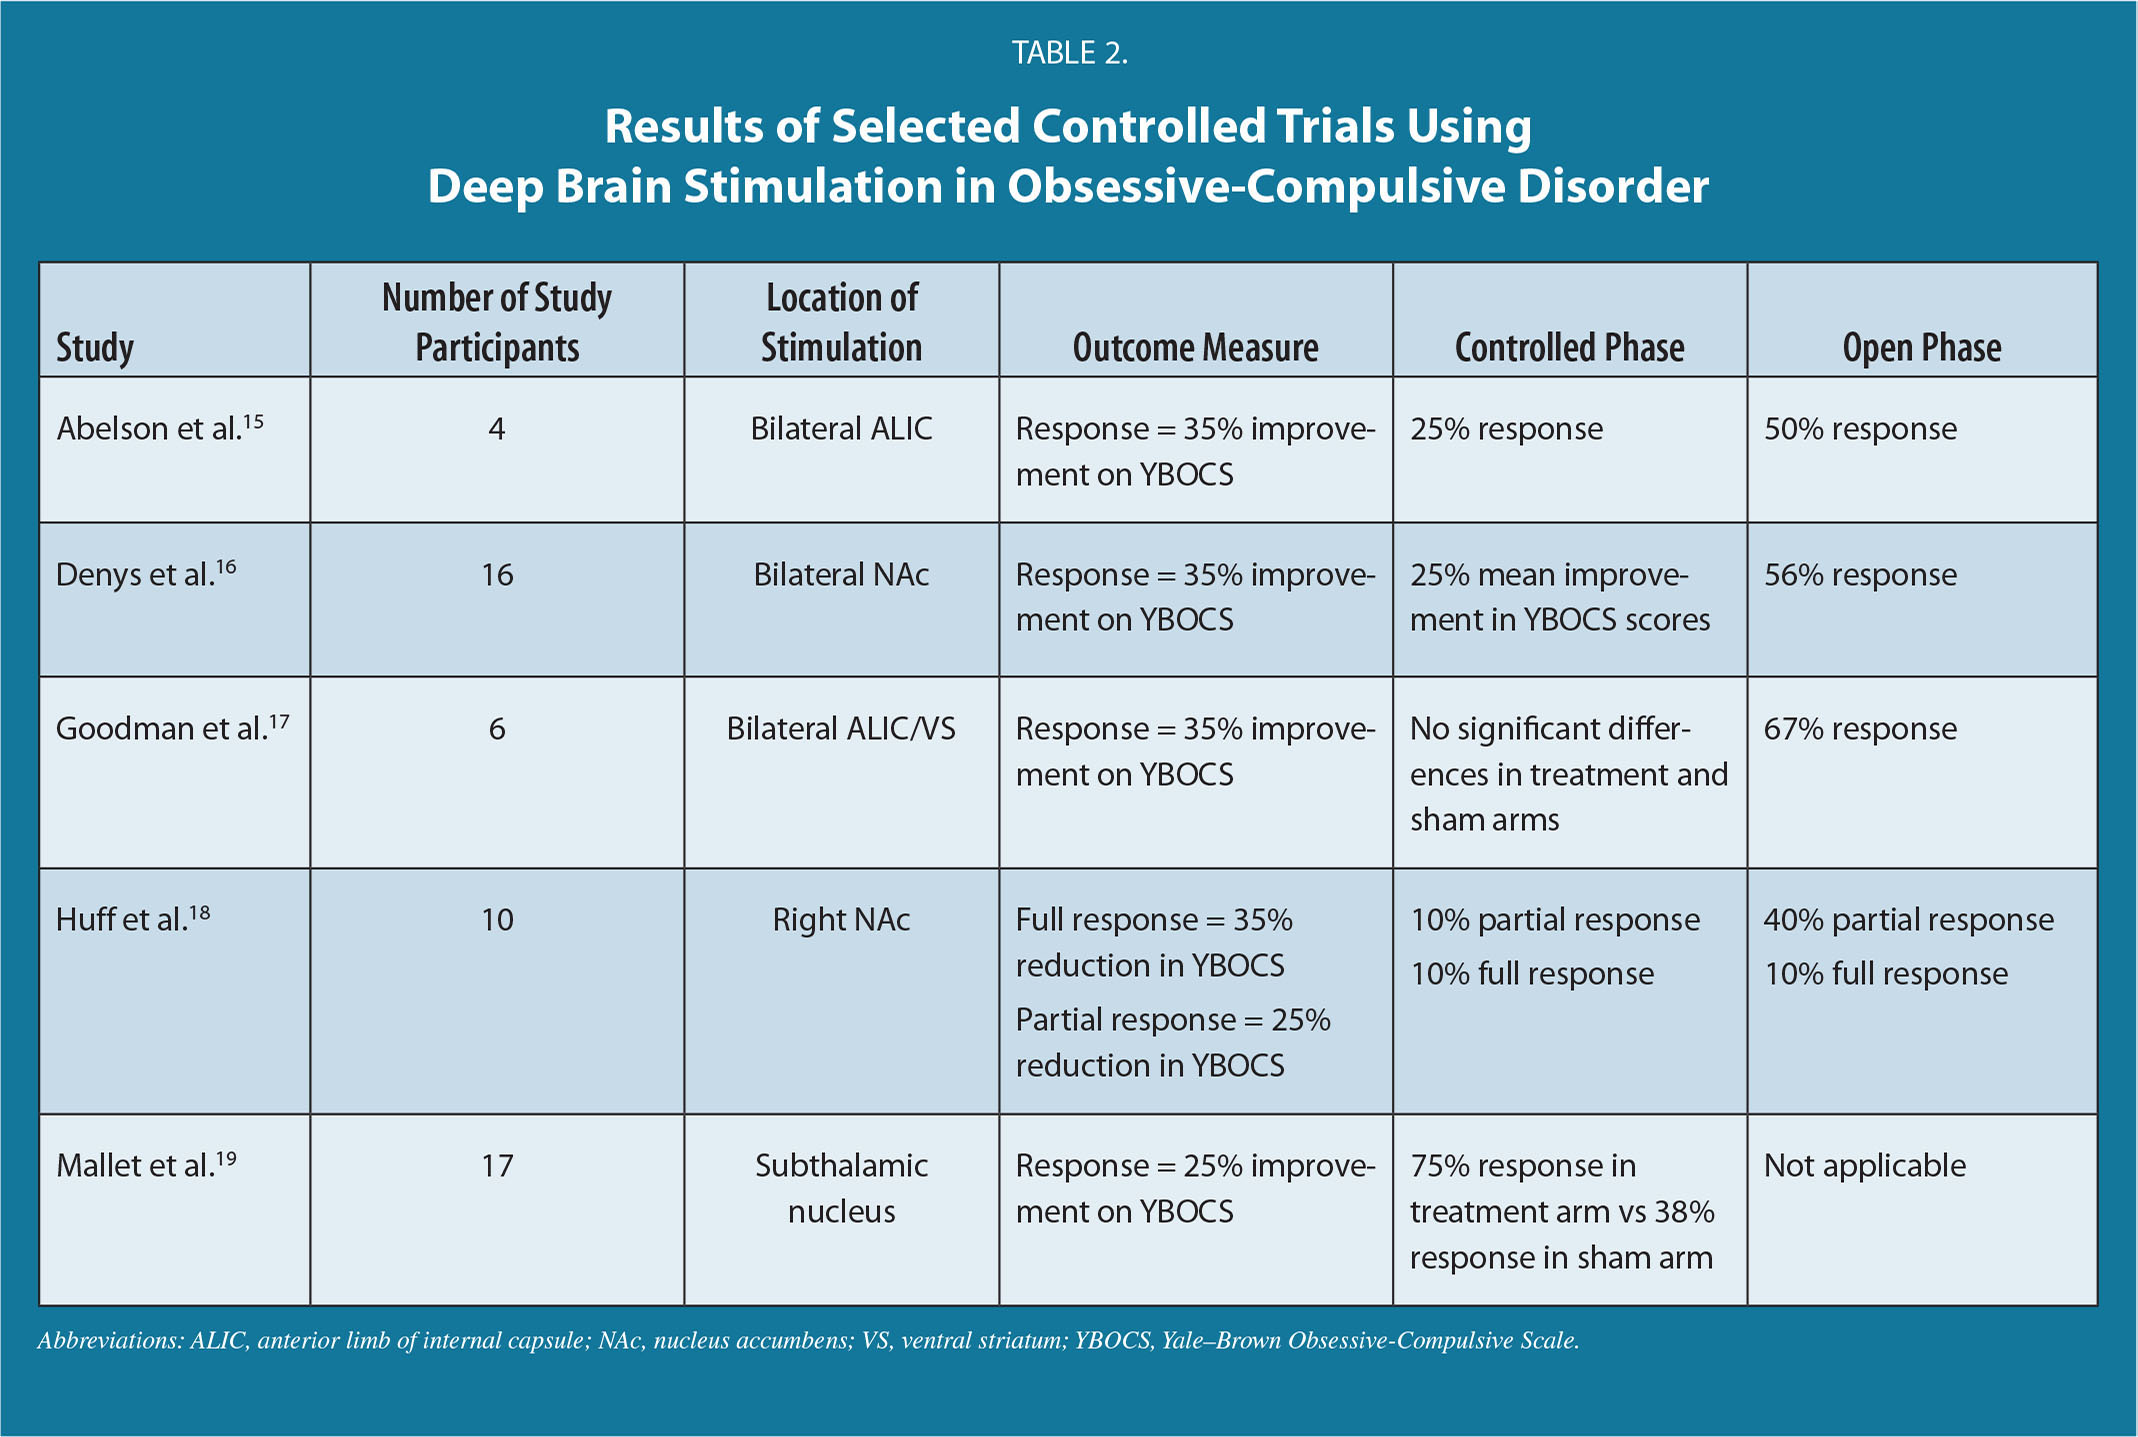 Results of Selected Controlled Trials Using Deep Brain Stimulation in Obsessive-Compulsive Disorder